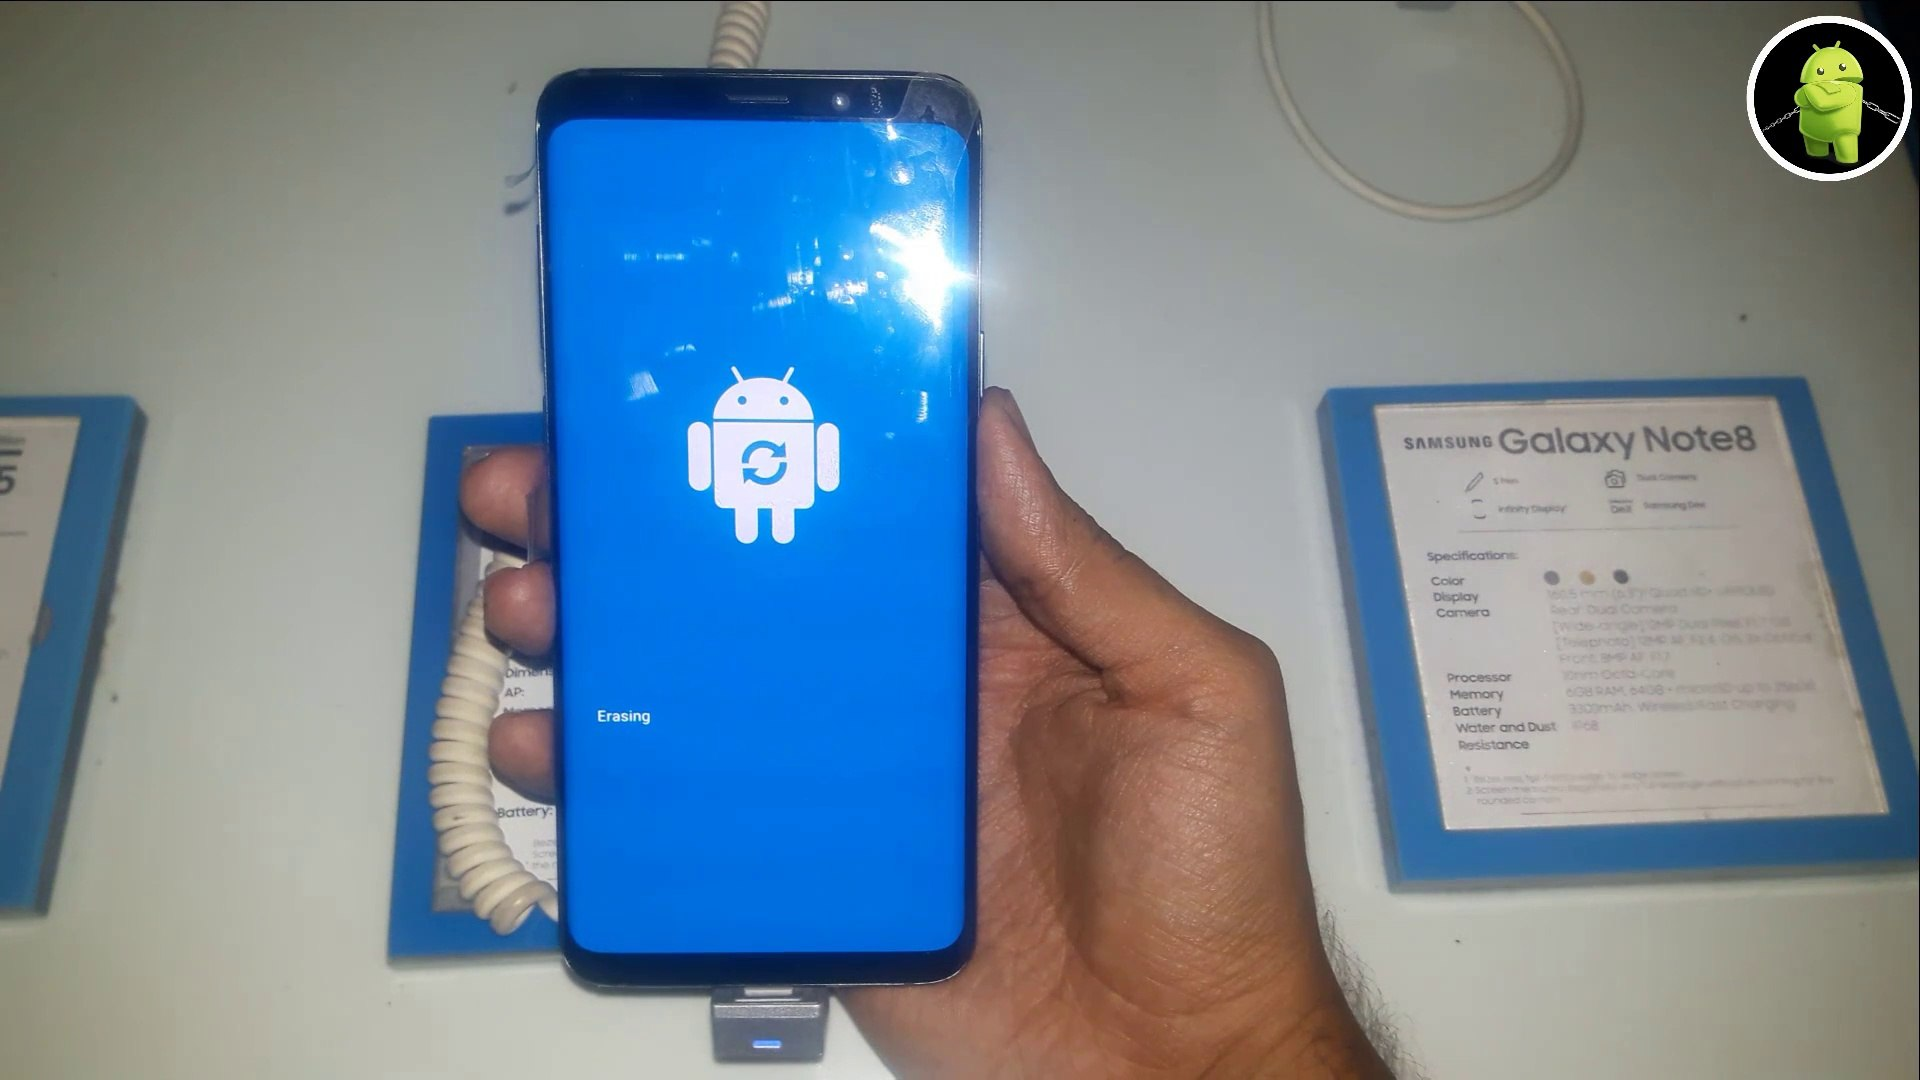 Remove Retail Mode in 2 minutes, All Samsung Live Demo Unit S9, S8, S7, S6,  S5, J2 & A8 2018 etc